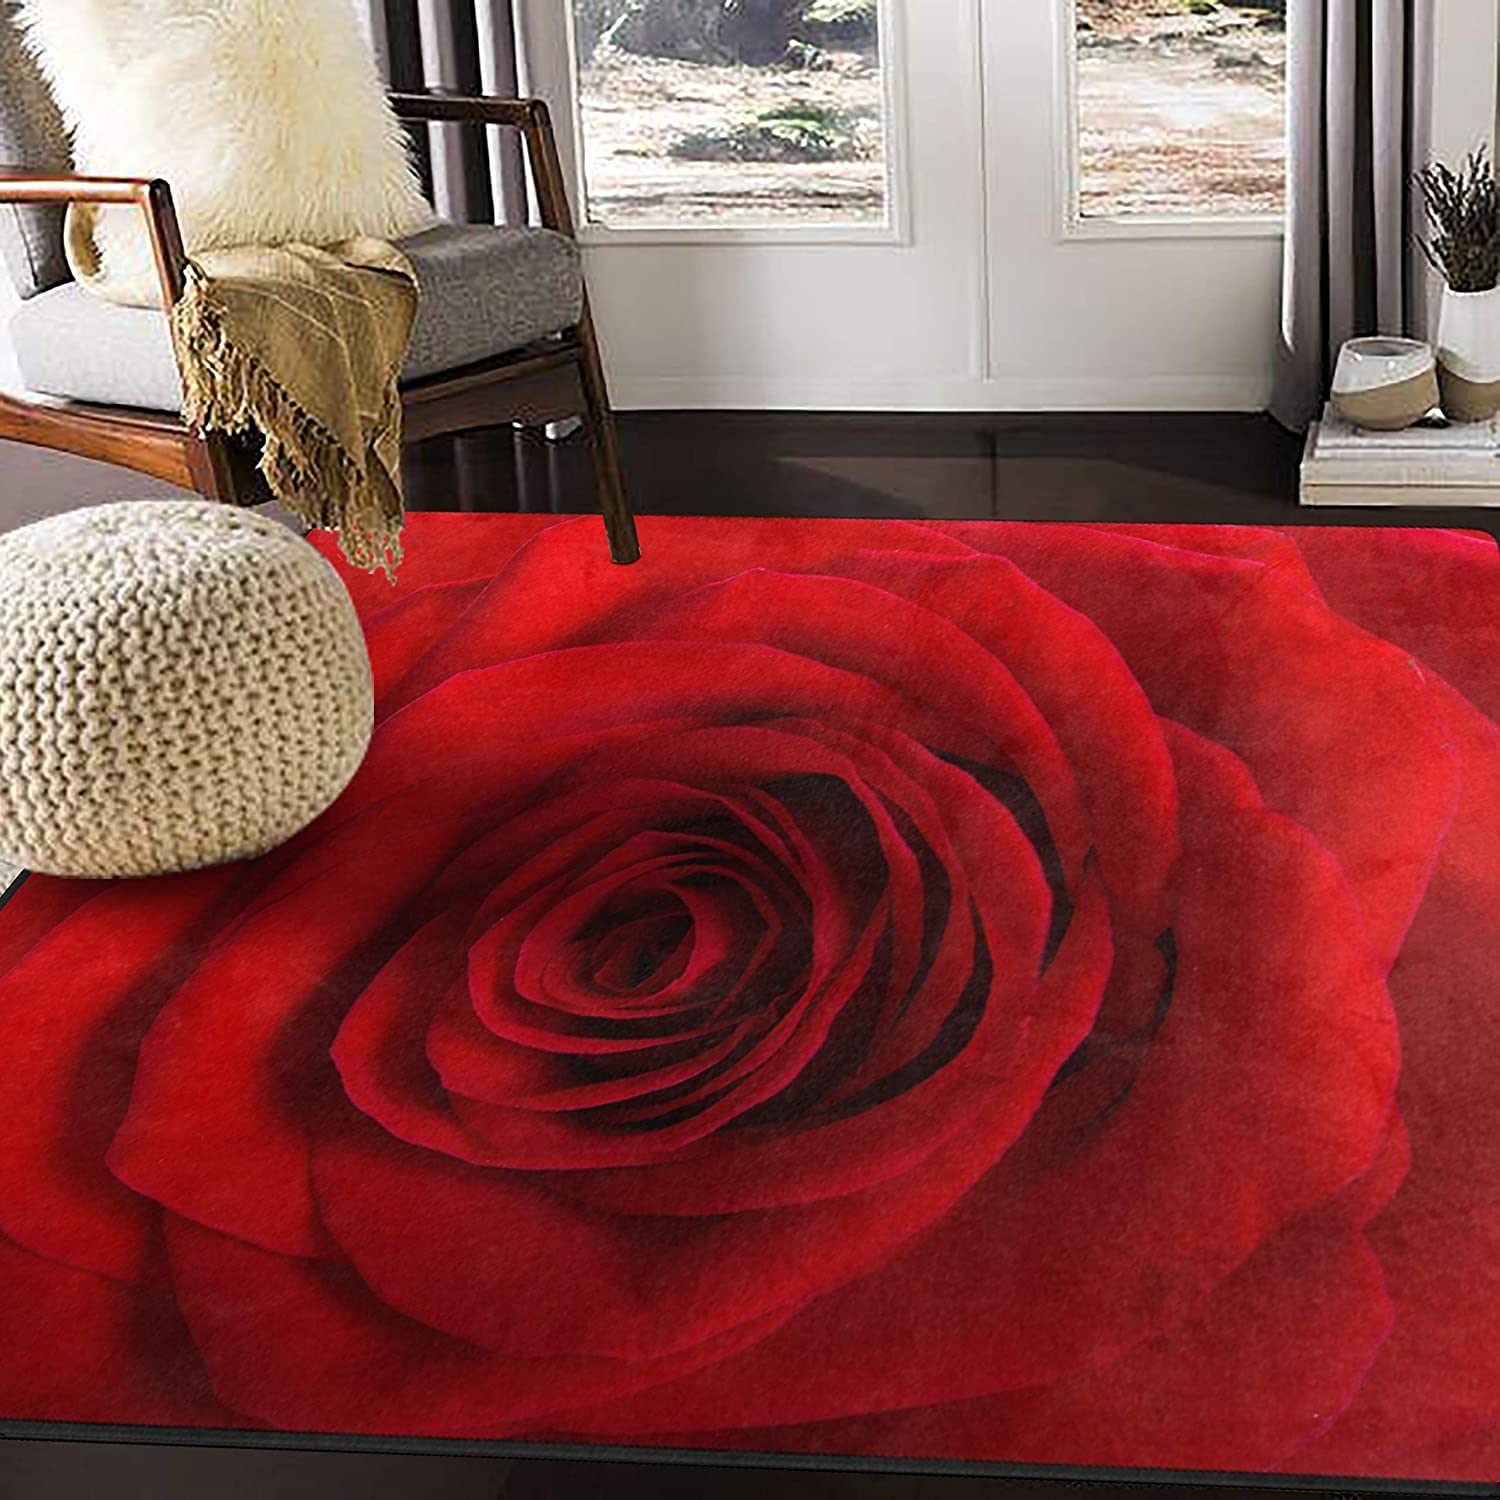 Alaza Valentine S Day Red Rose Flower Area Rug Rugs For Living Room Bedroom 5 3 X4 Home Kitchen Amazon Com